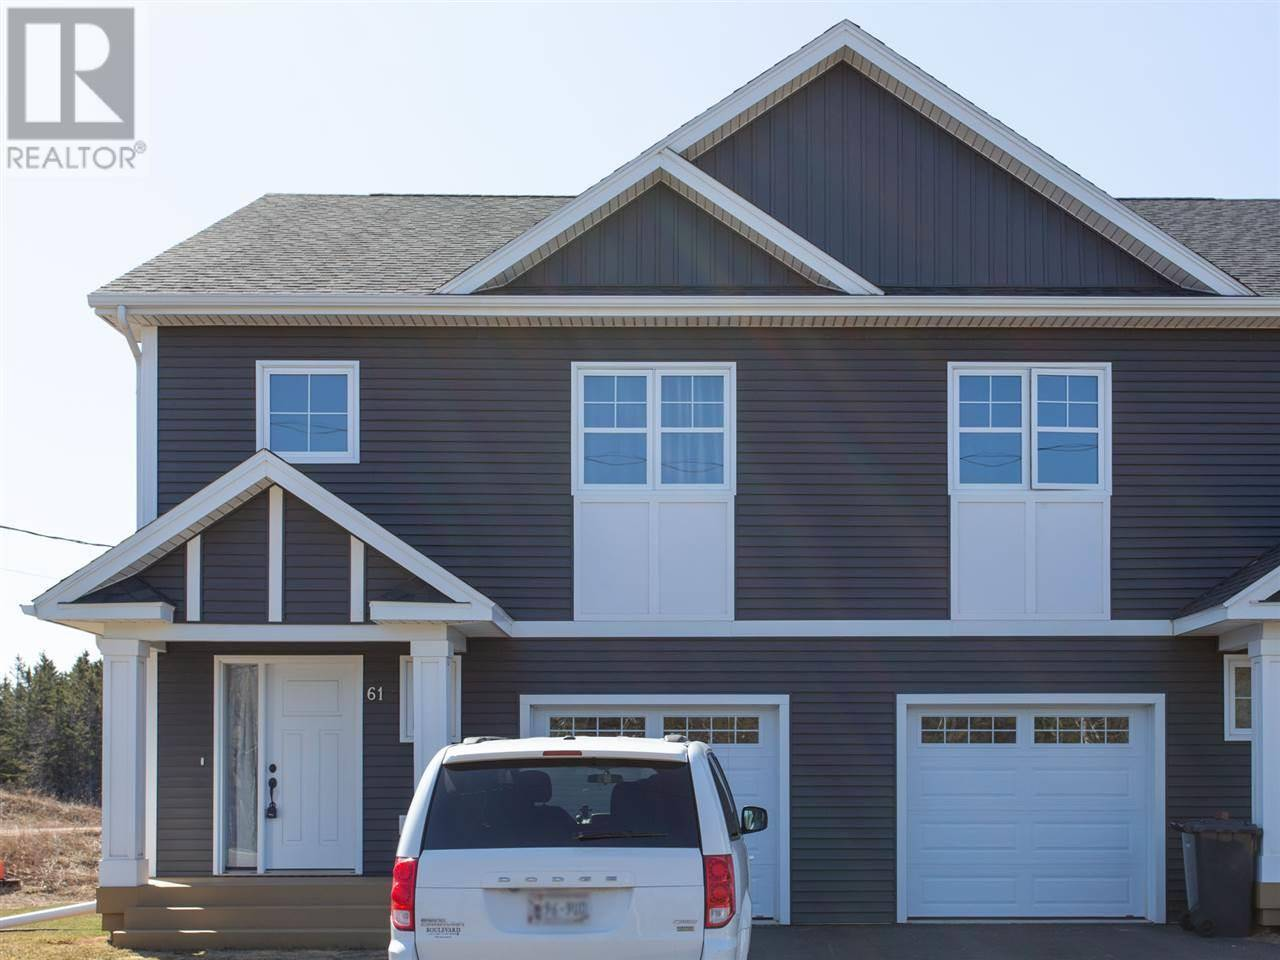 House for sale at 61 Royalty Rd Charlottetown Prince Edward Island - MLS: 202000061